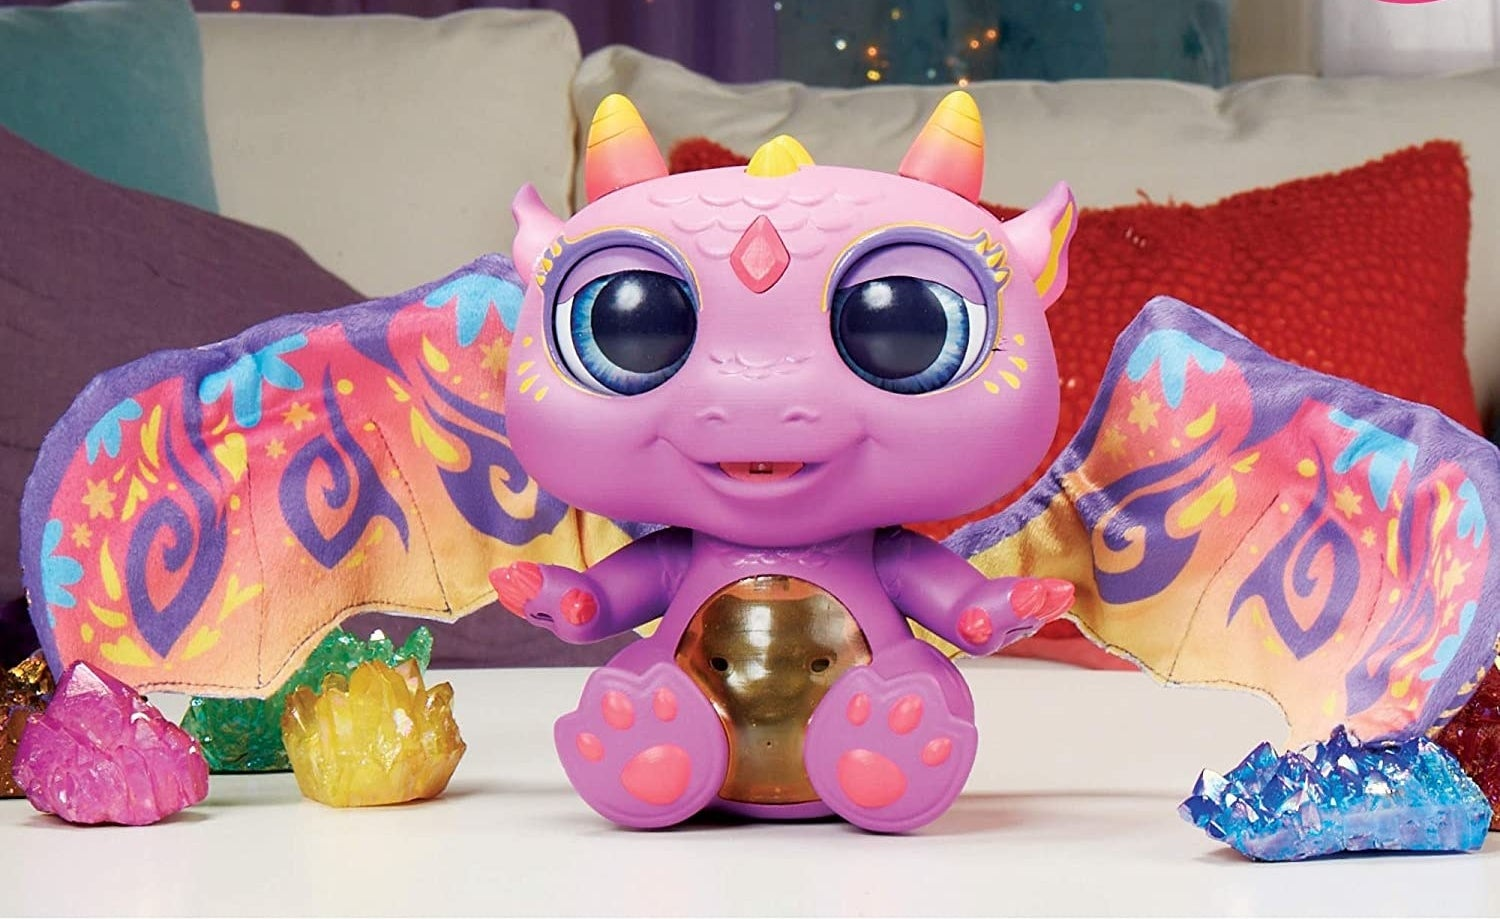 Purple toy dragon with wings extended and fire crystals